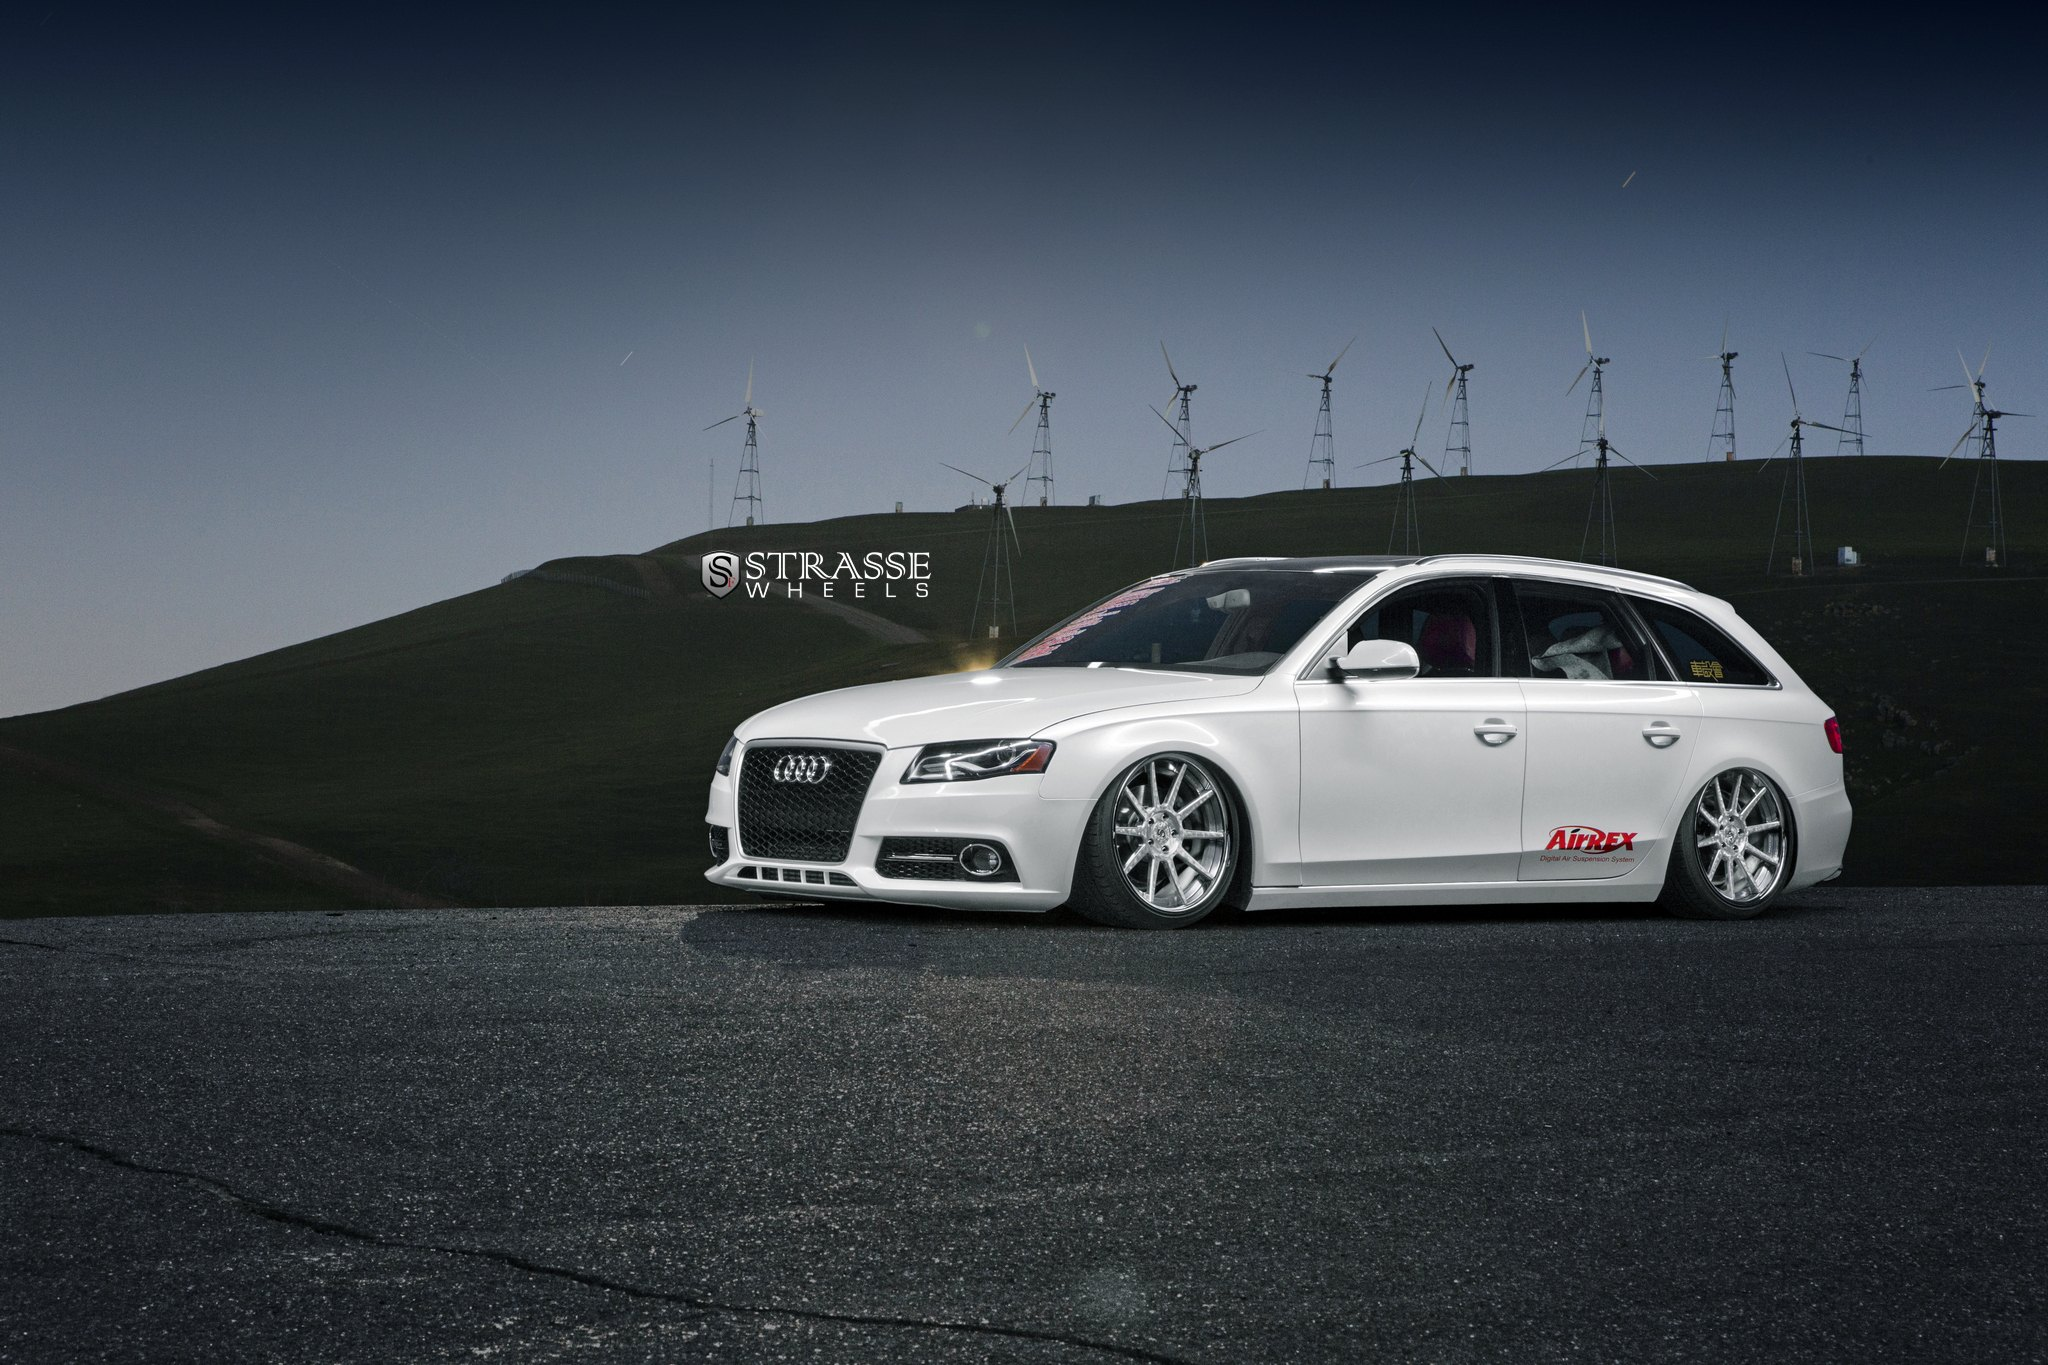 Custom Audi A4 Images Mods Photos Upgrades Gallery White Black Rims Front Bumper With Led Lights On Photo By Strasse Forged